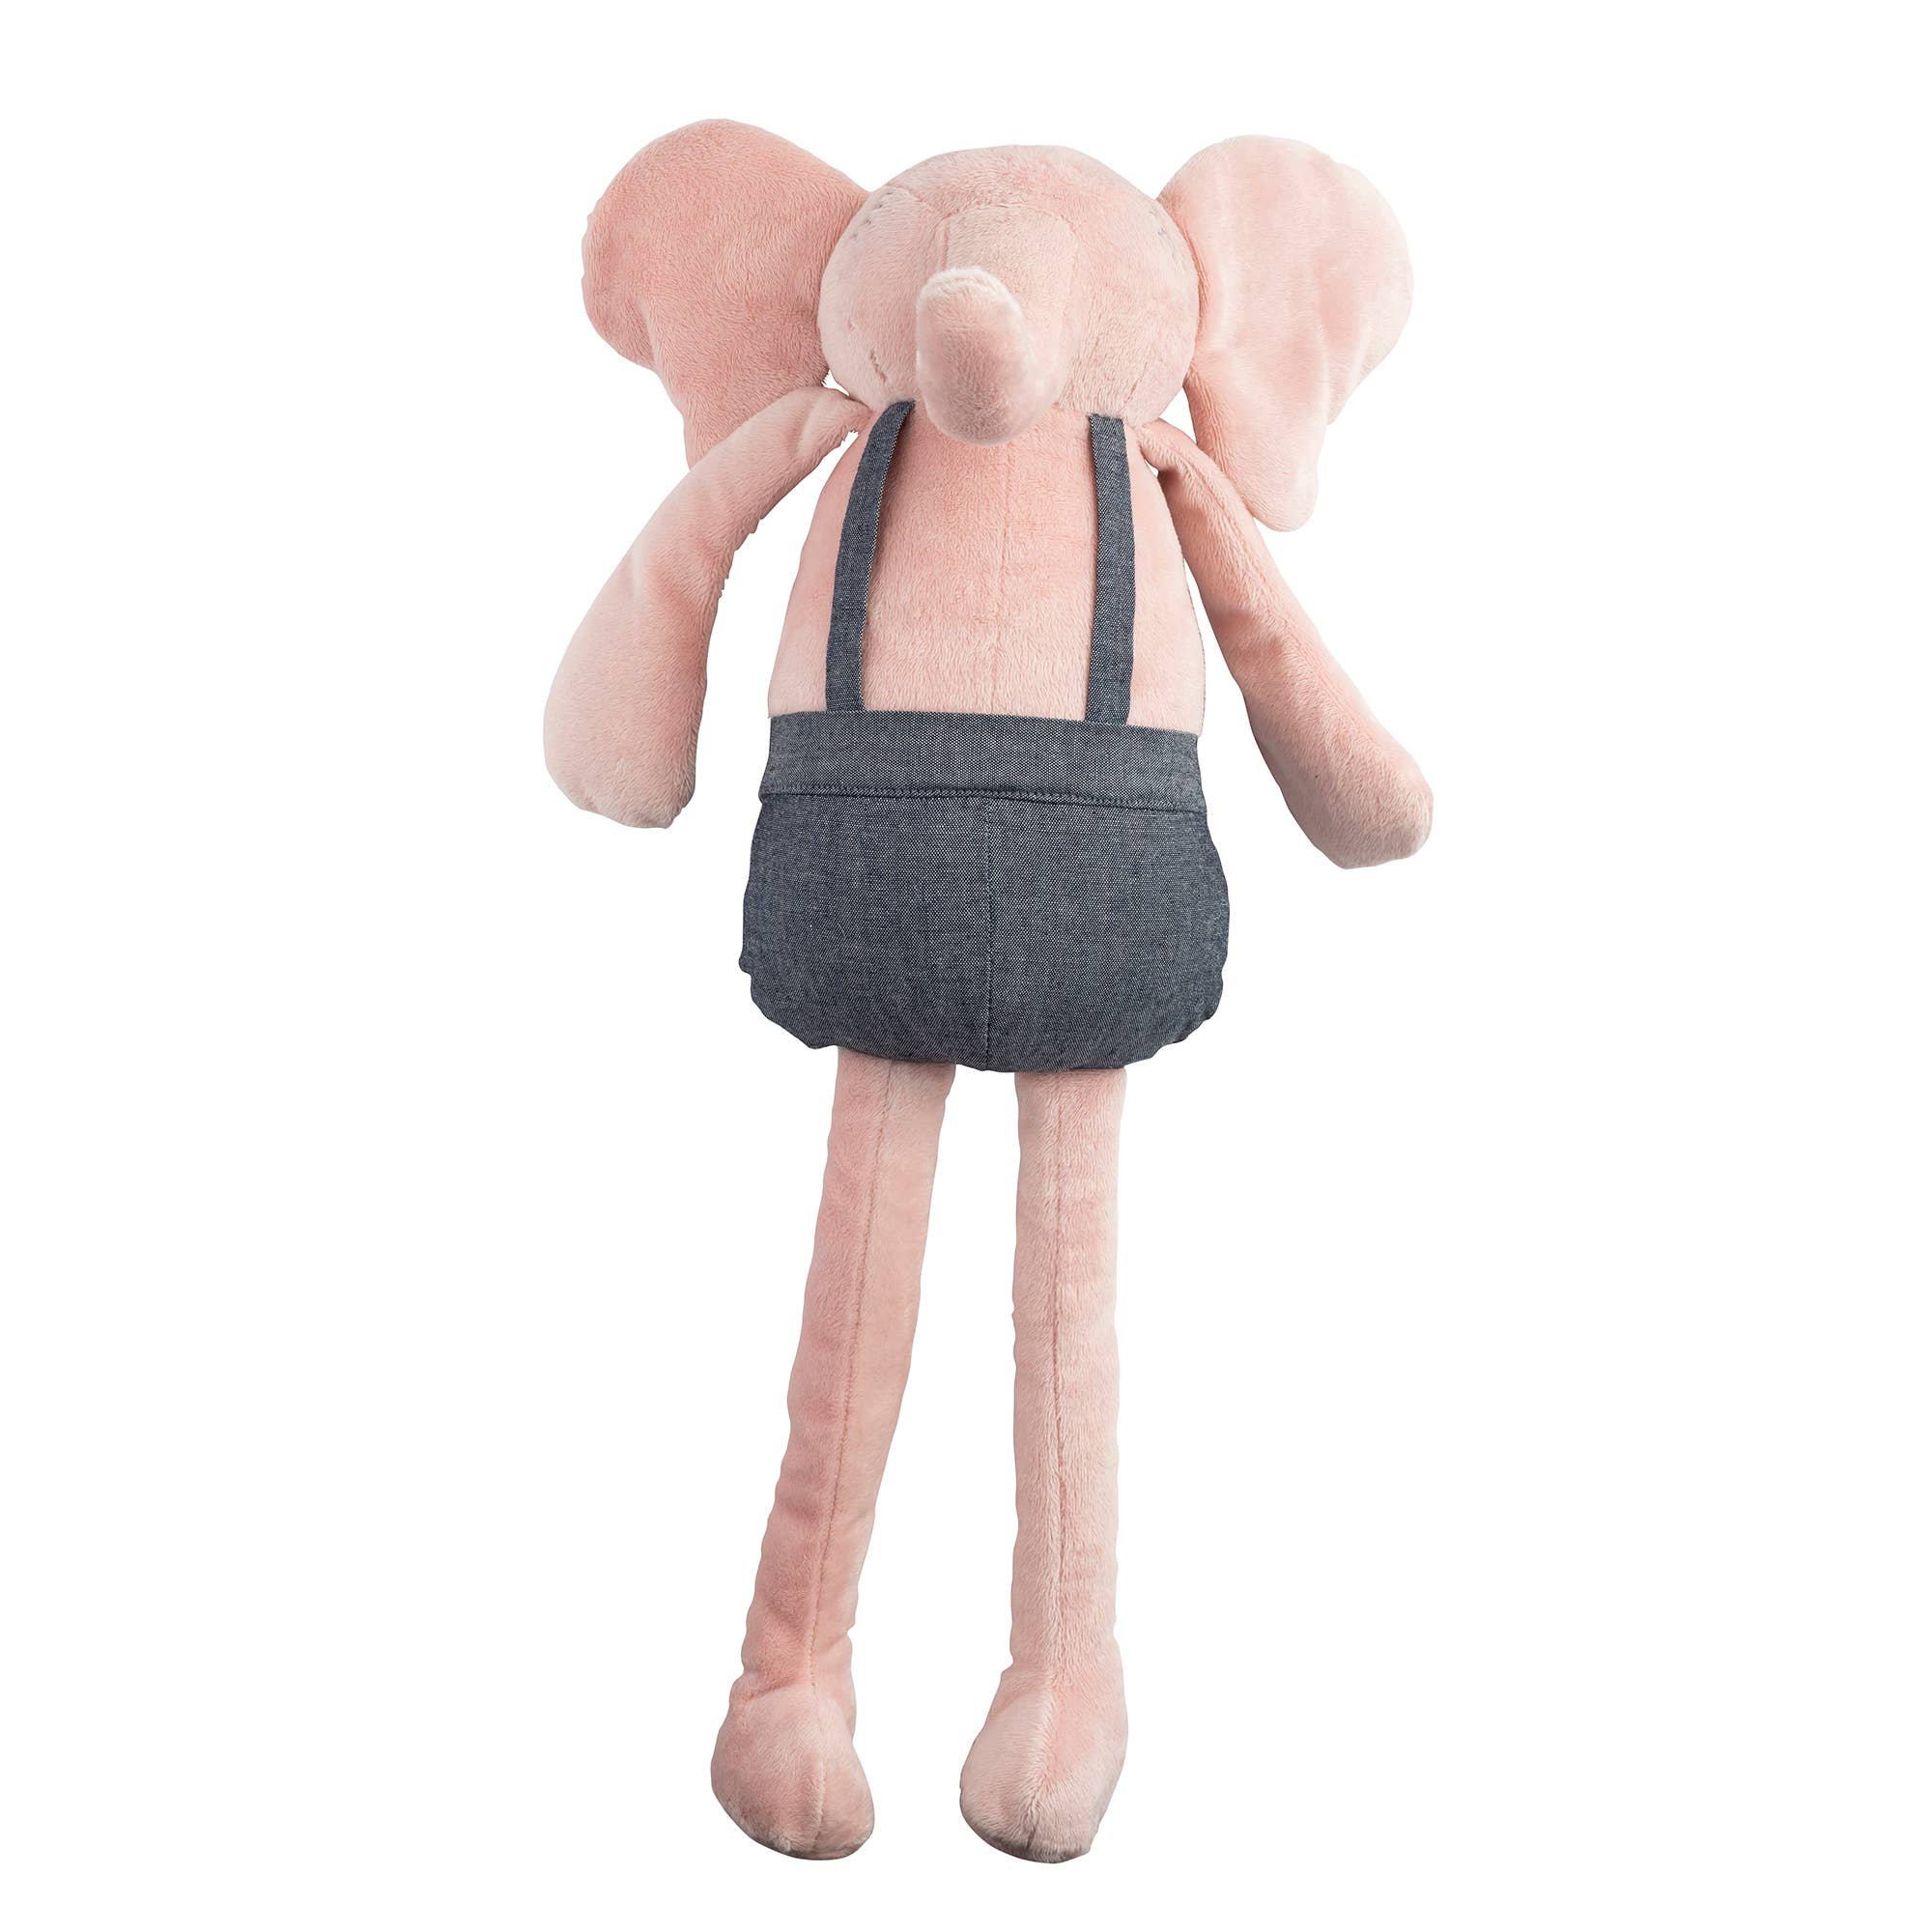 Lil Pyar Pink Elephant Plush Huggie Doll in denim coveralls